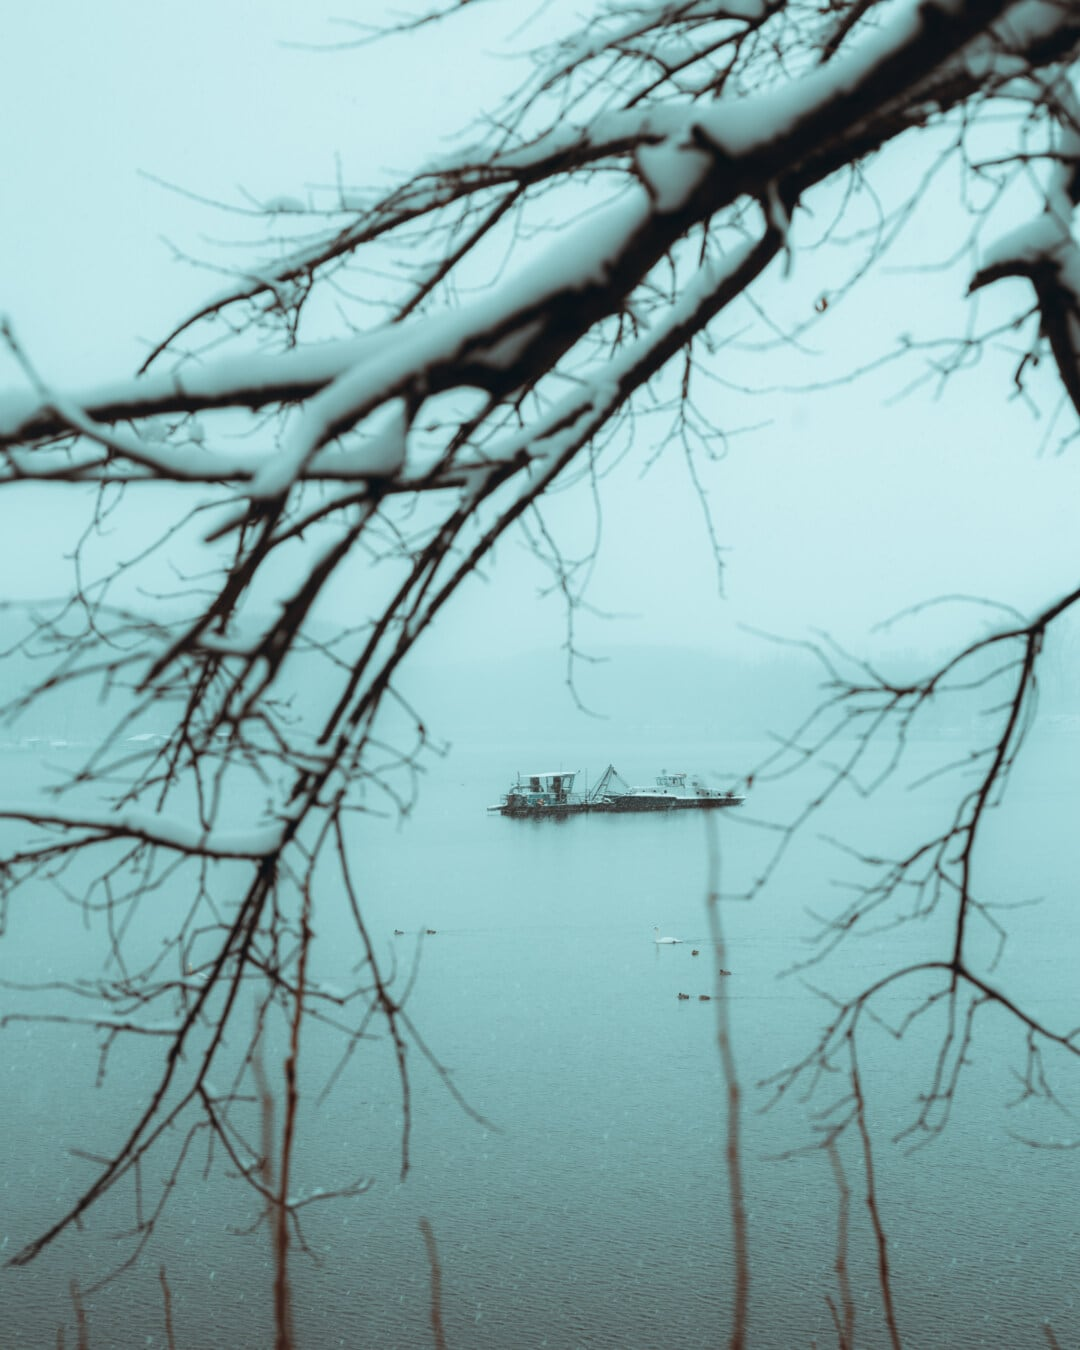 lake, fishing boat, winter, snowy, branches, fog, frosty, nature, tree, snow